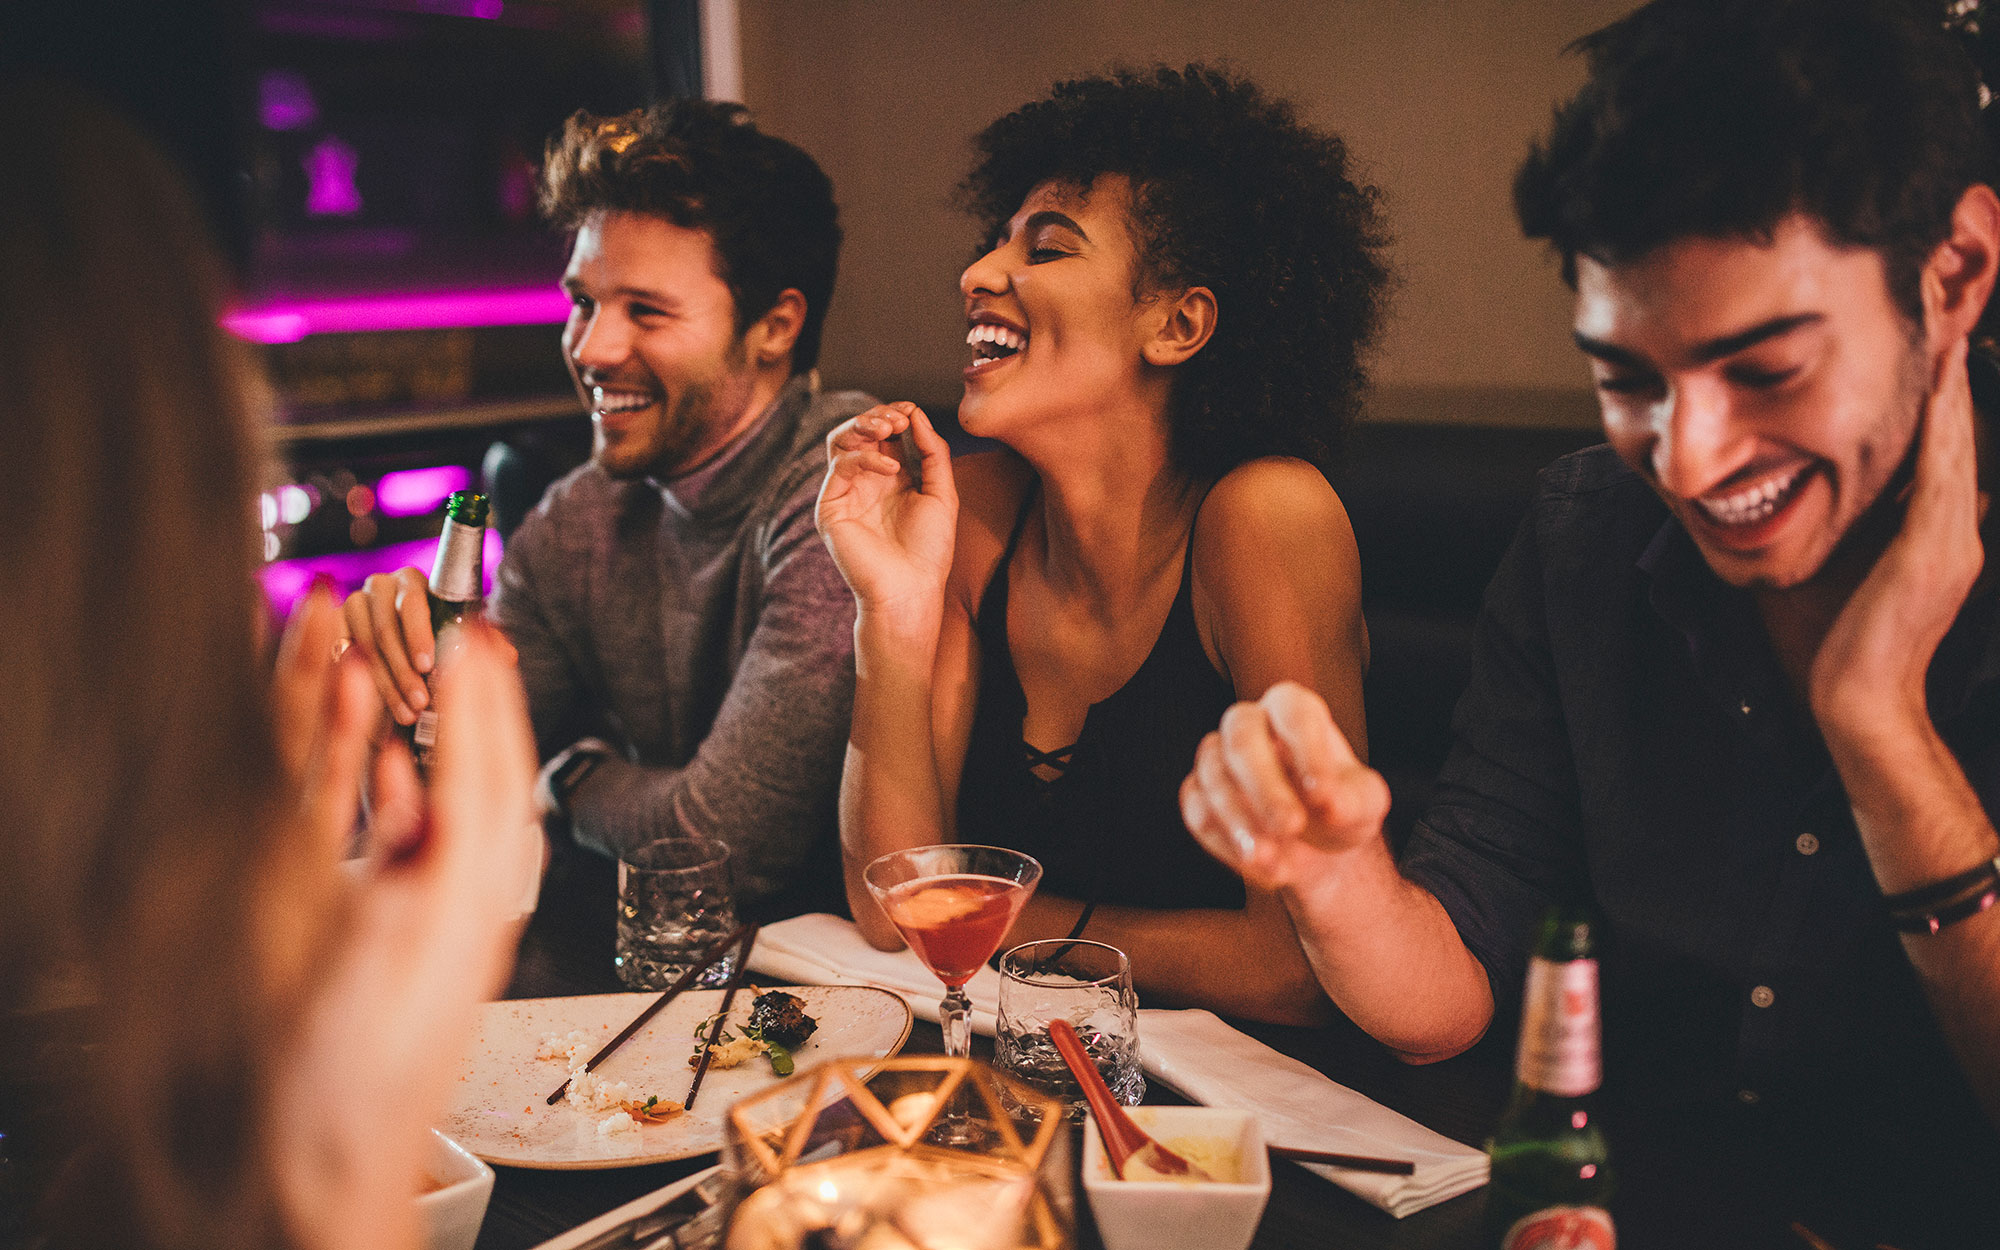 Ethnically diverse friends at a bar with cocktails laughing and having a good time in a nightclub